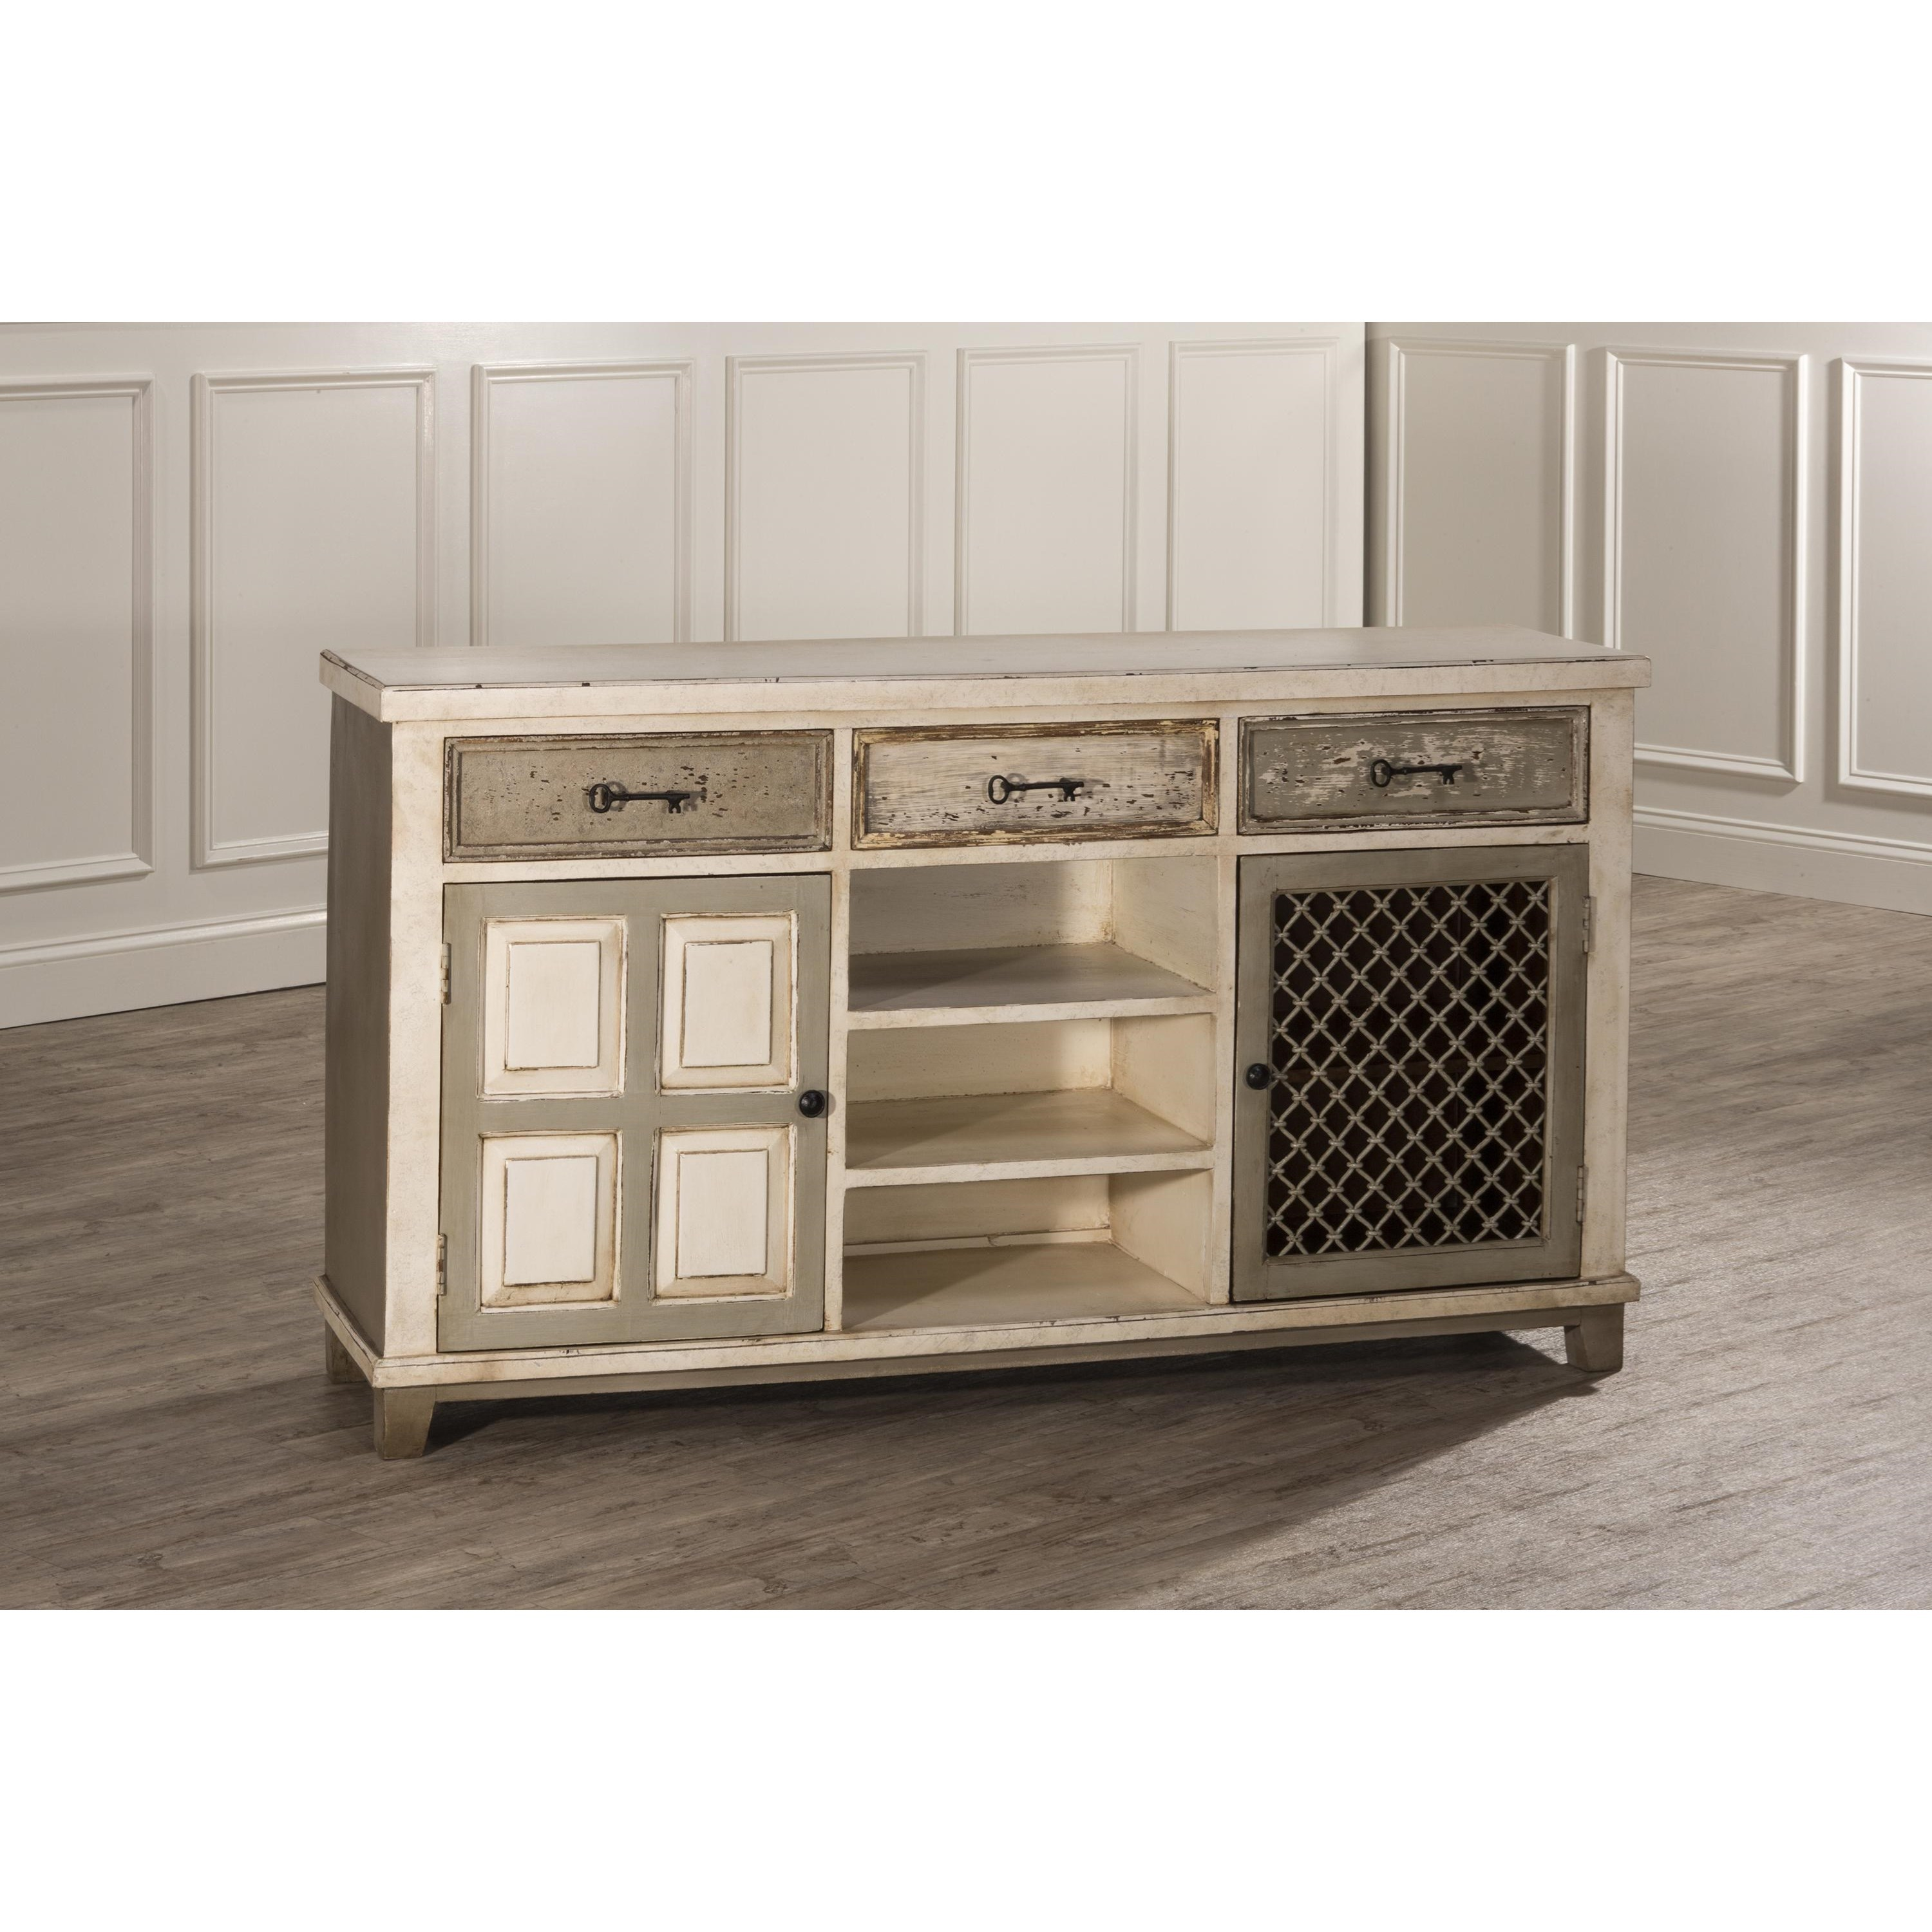 Paint And Wine Hagerstown Md Server With Built In Wine